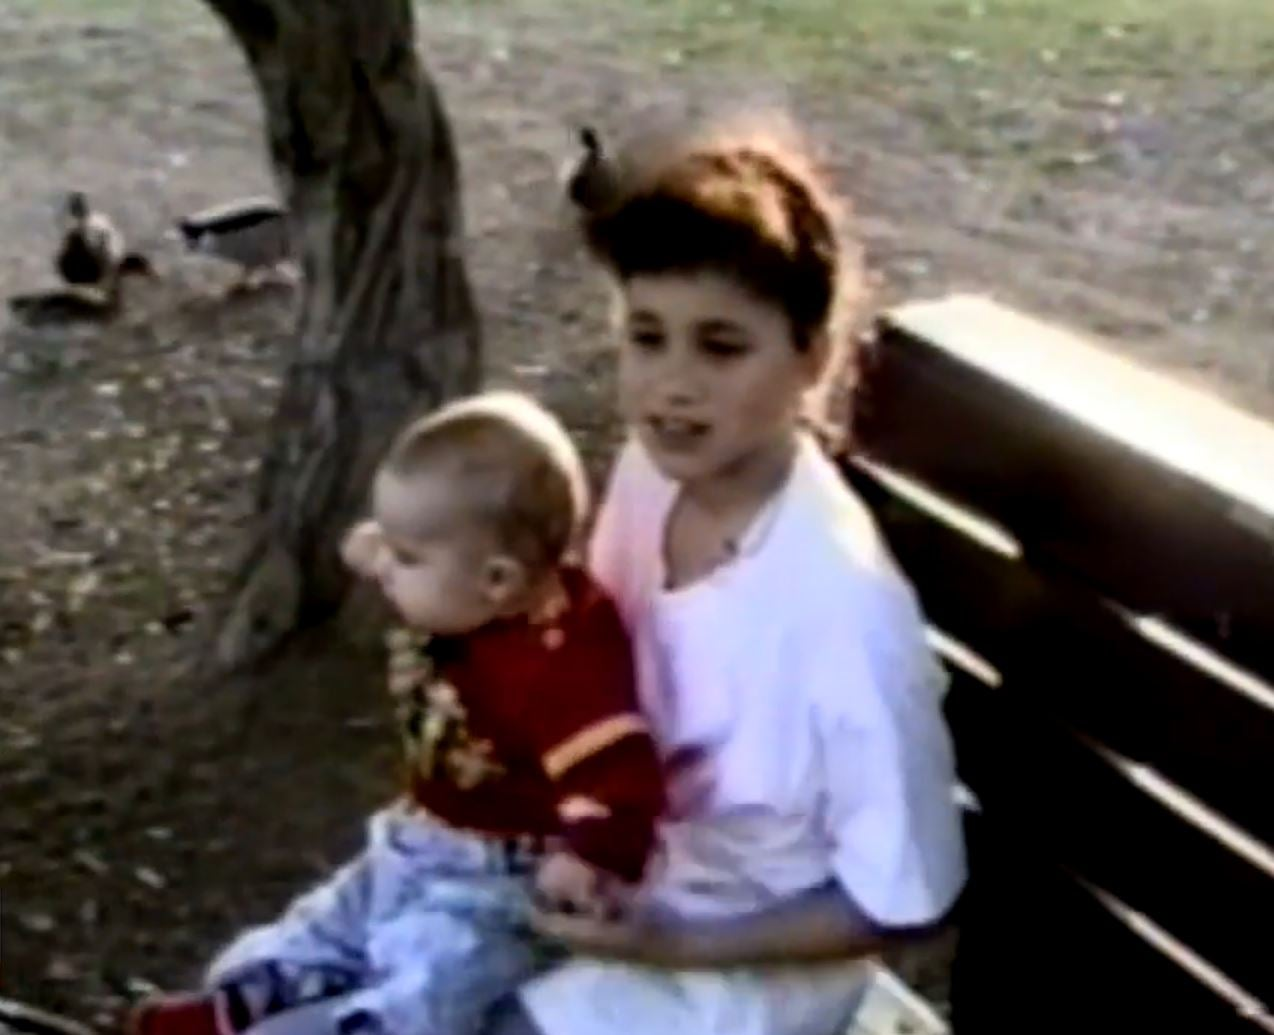 Tyler and Markle as Young Kids